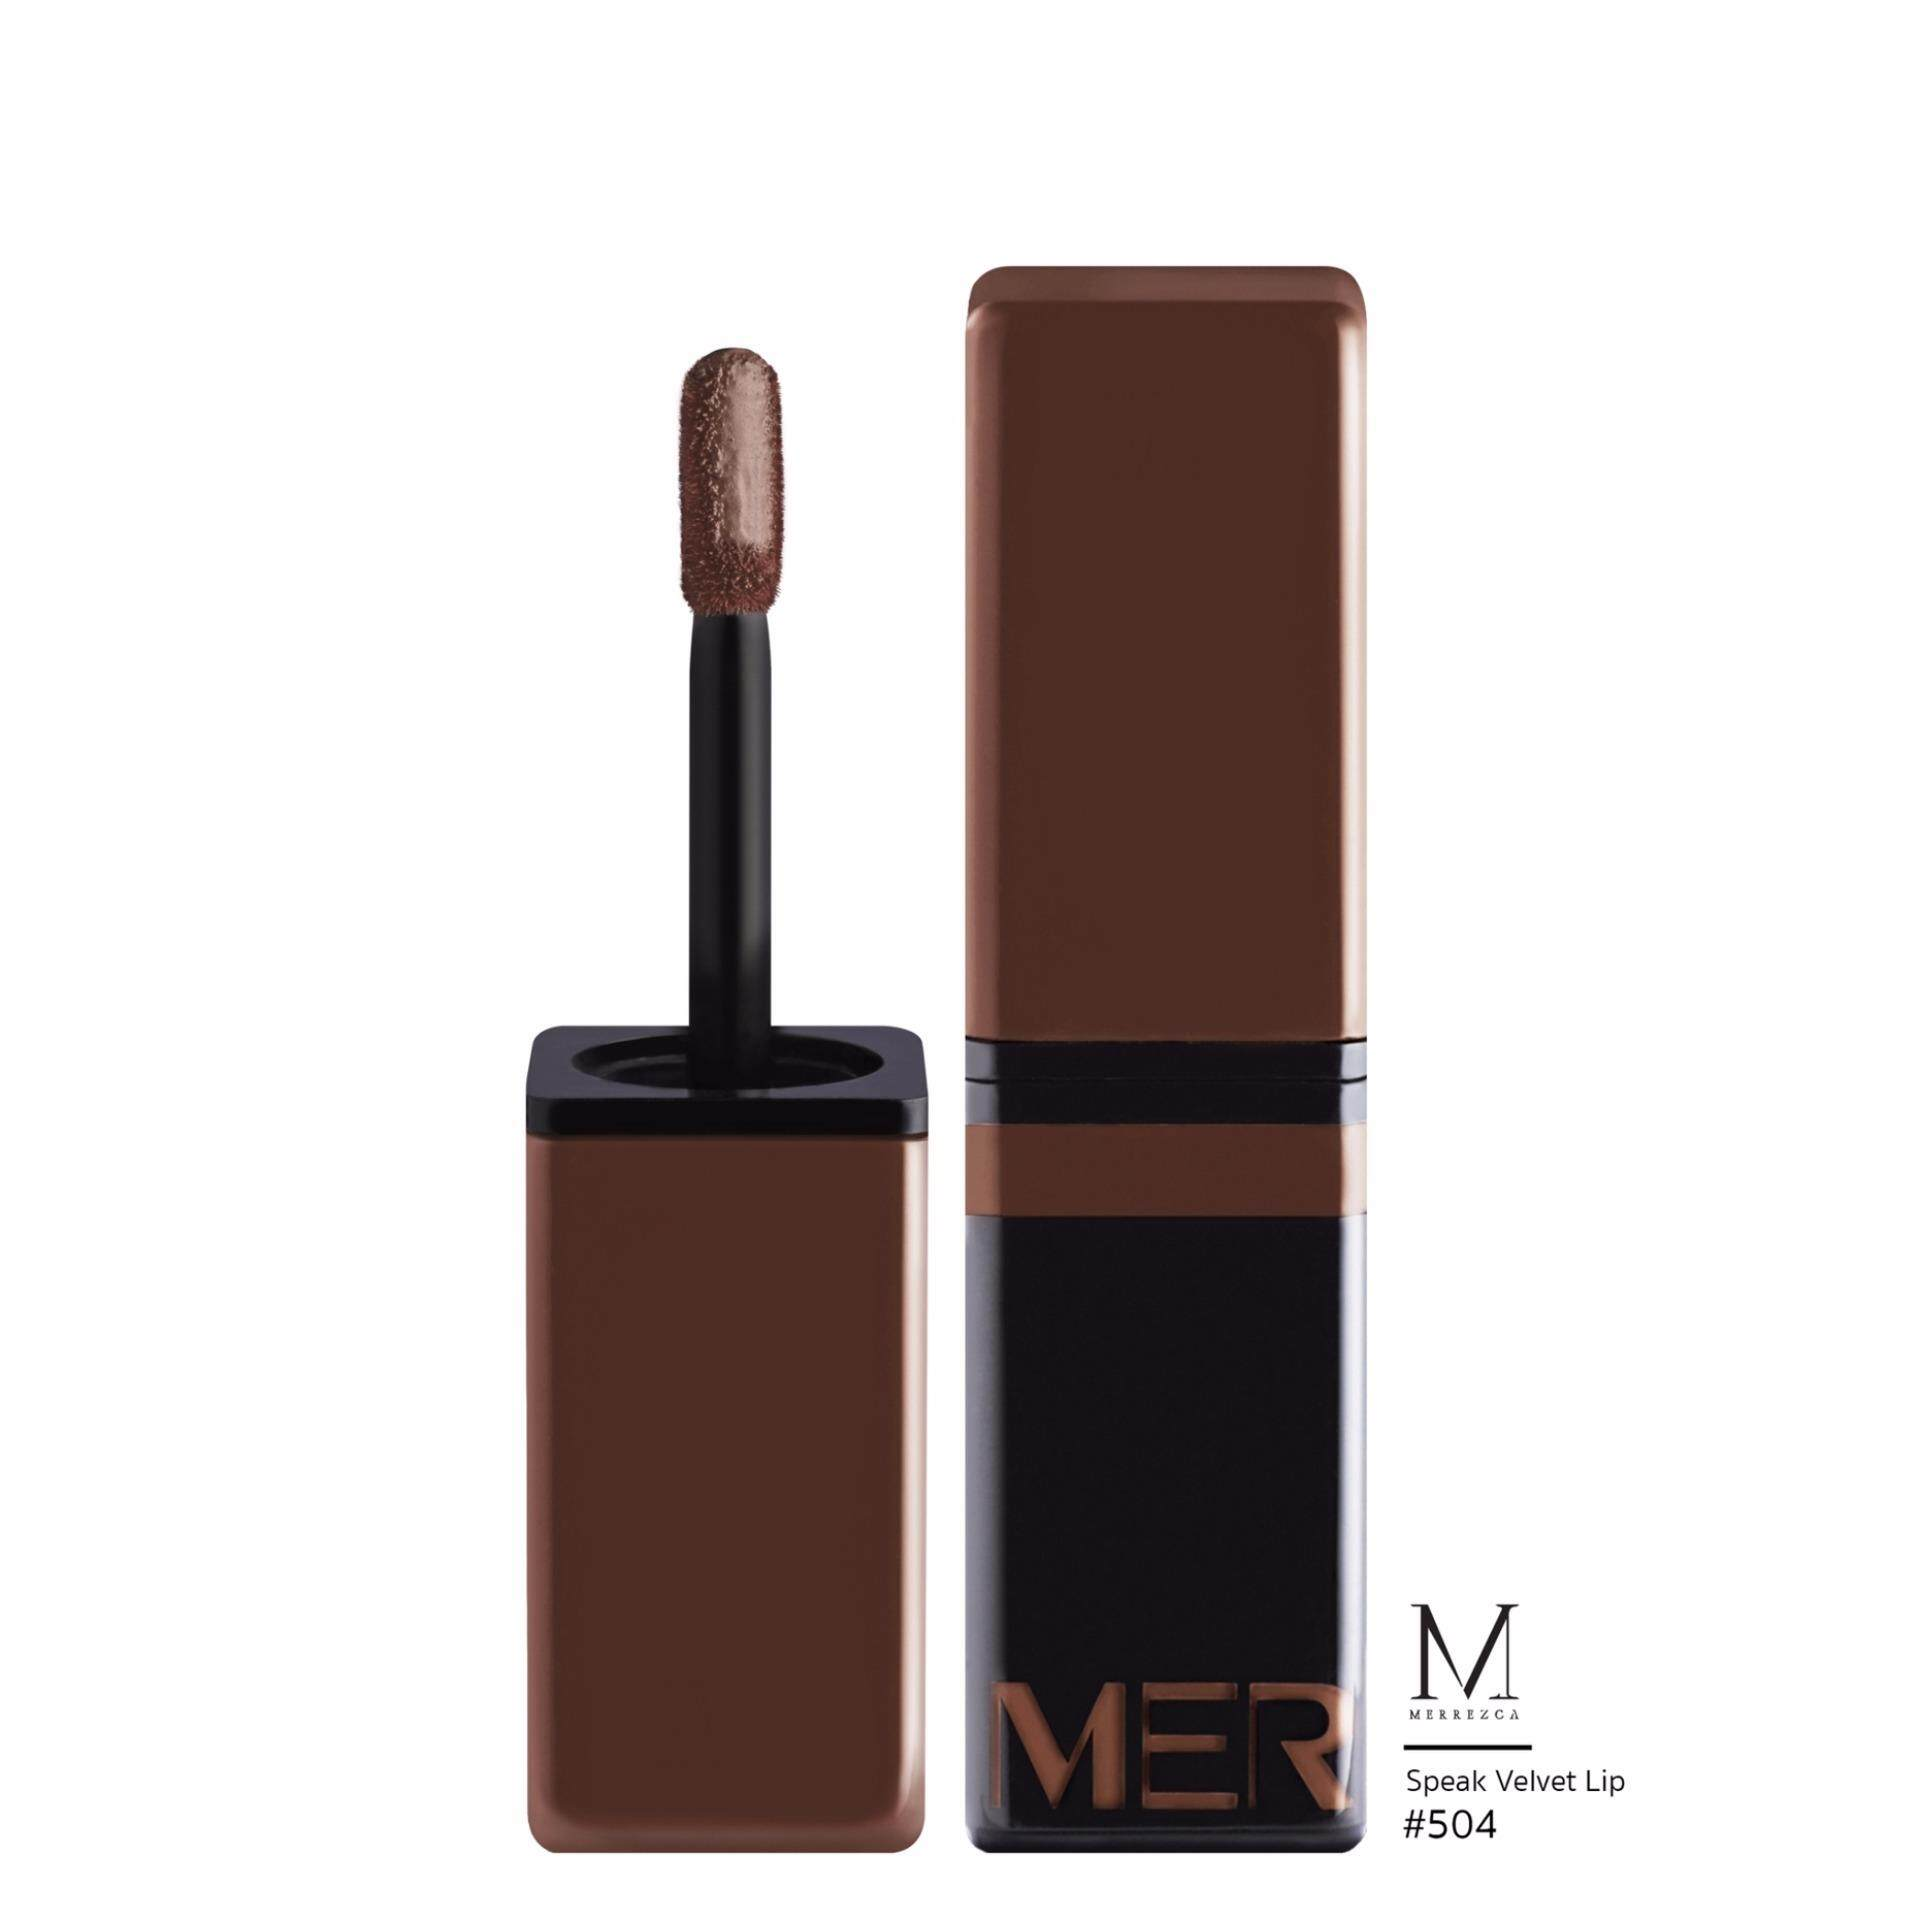 Merrez'ca speak velvet lip # 503 RUST